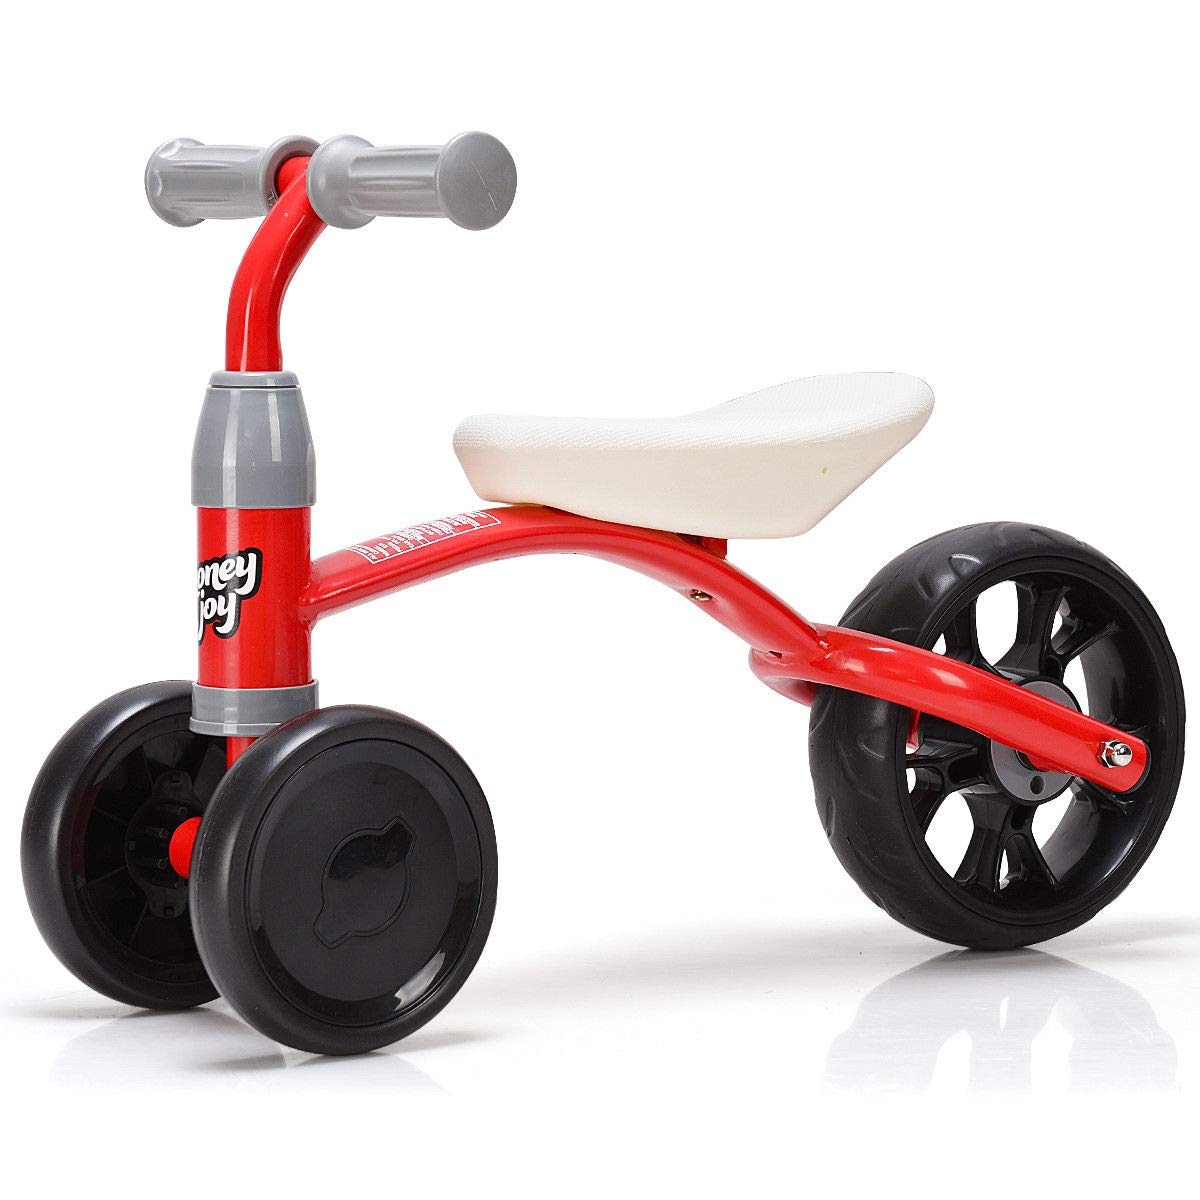 HONEY JOY Baby Balance Bike, 3 Wheels Learn to Walk Toddle Tricycle, Solid Construction, 110lbs Capacity, Steering Limit, No Tool Required for Assembly, No Foot Pedal Walker for Boys & Girls